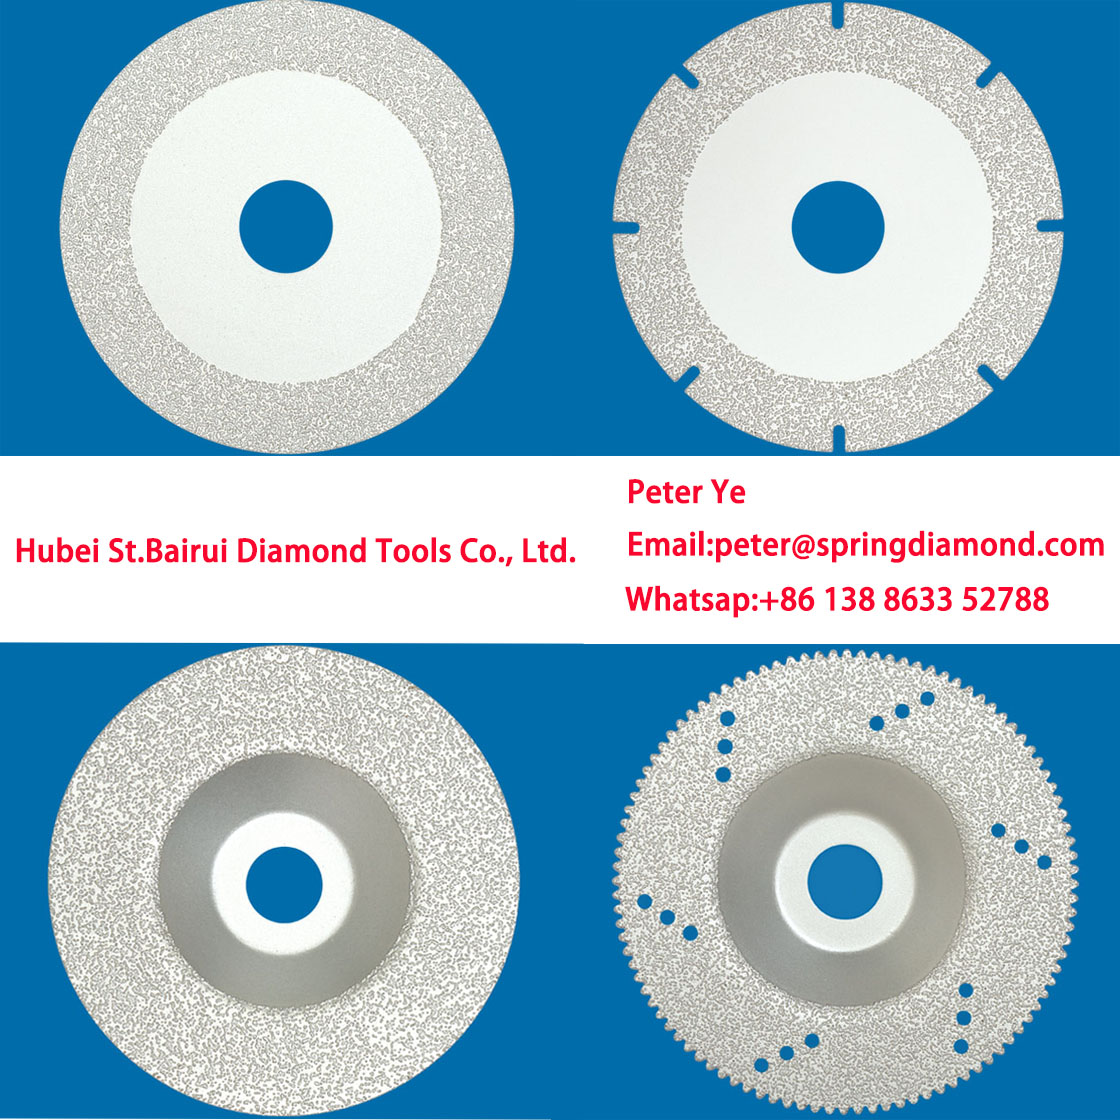 brazing discs for stone cutting and emergency rescue